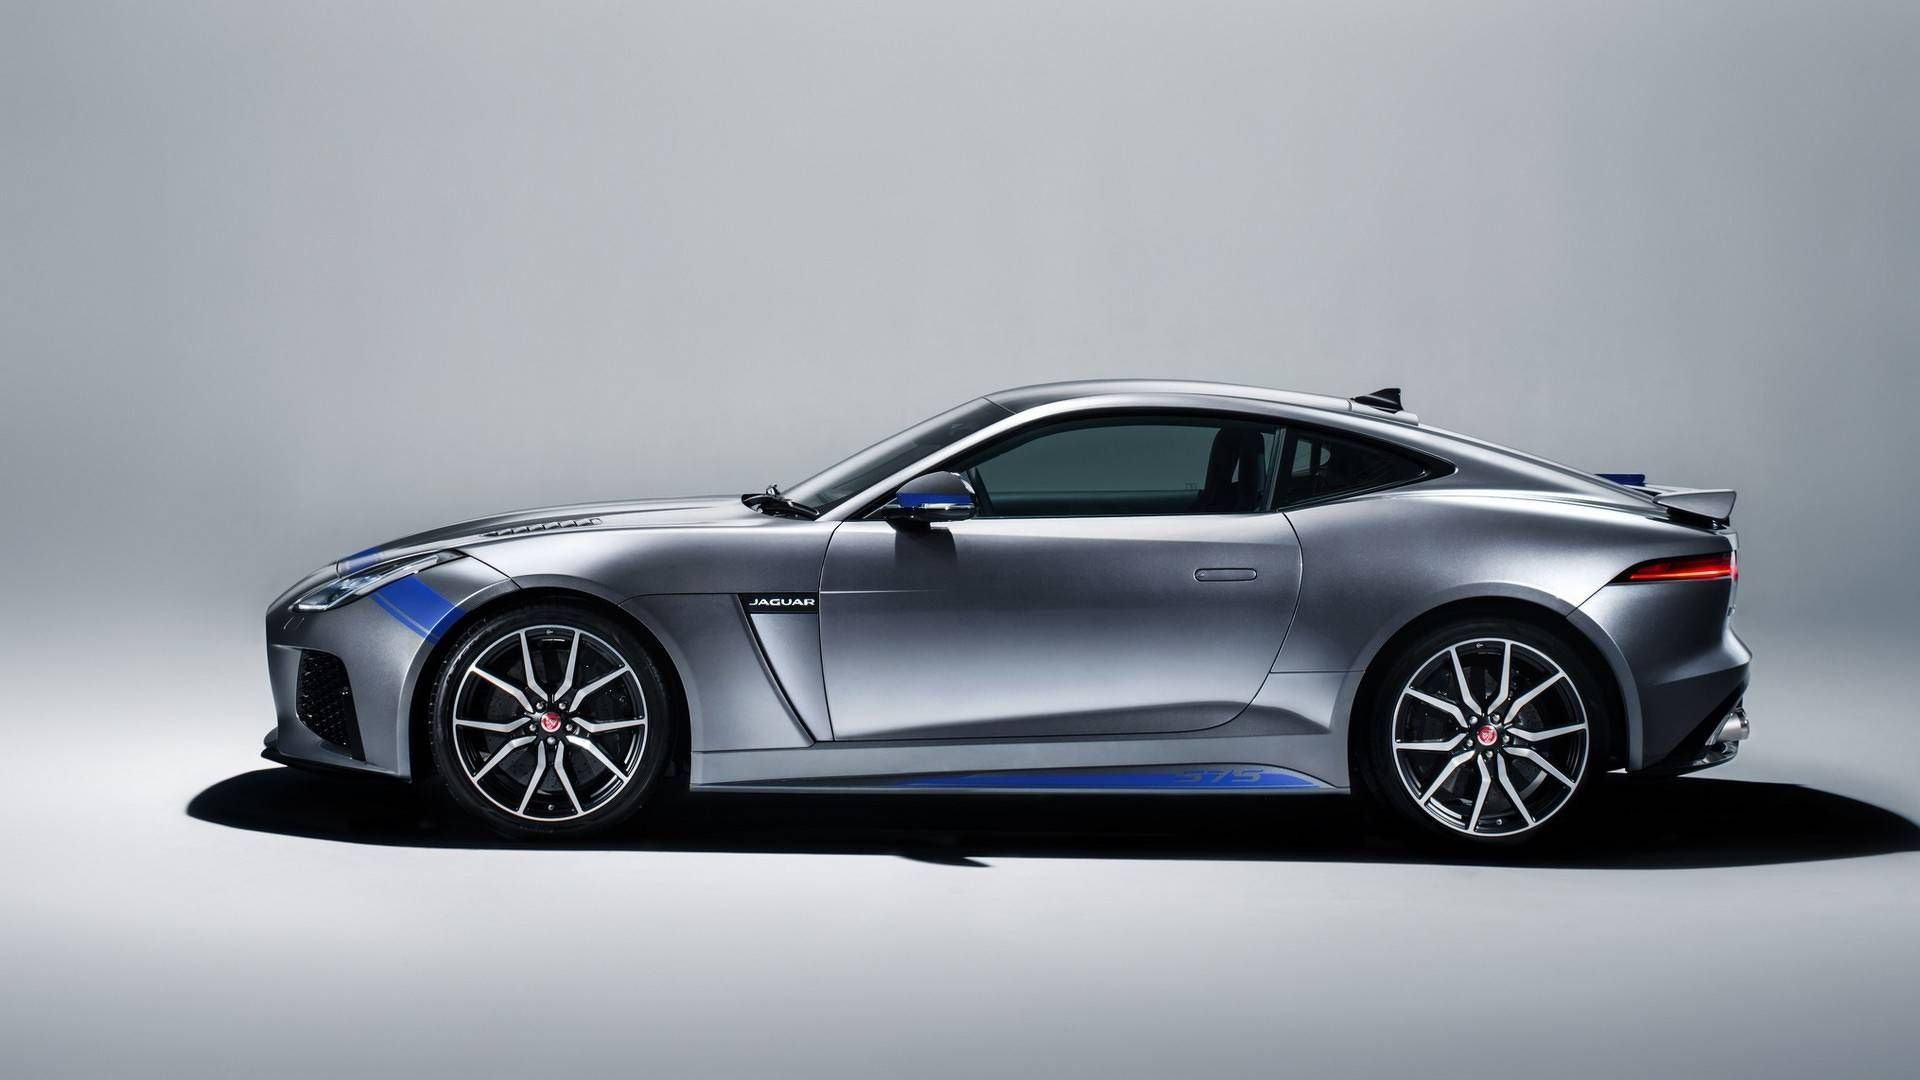 2020 Jaguar F Type Svr Redesign And Review Jaguar F Type Jaguar Jaguar Car